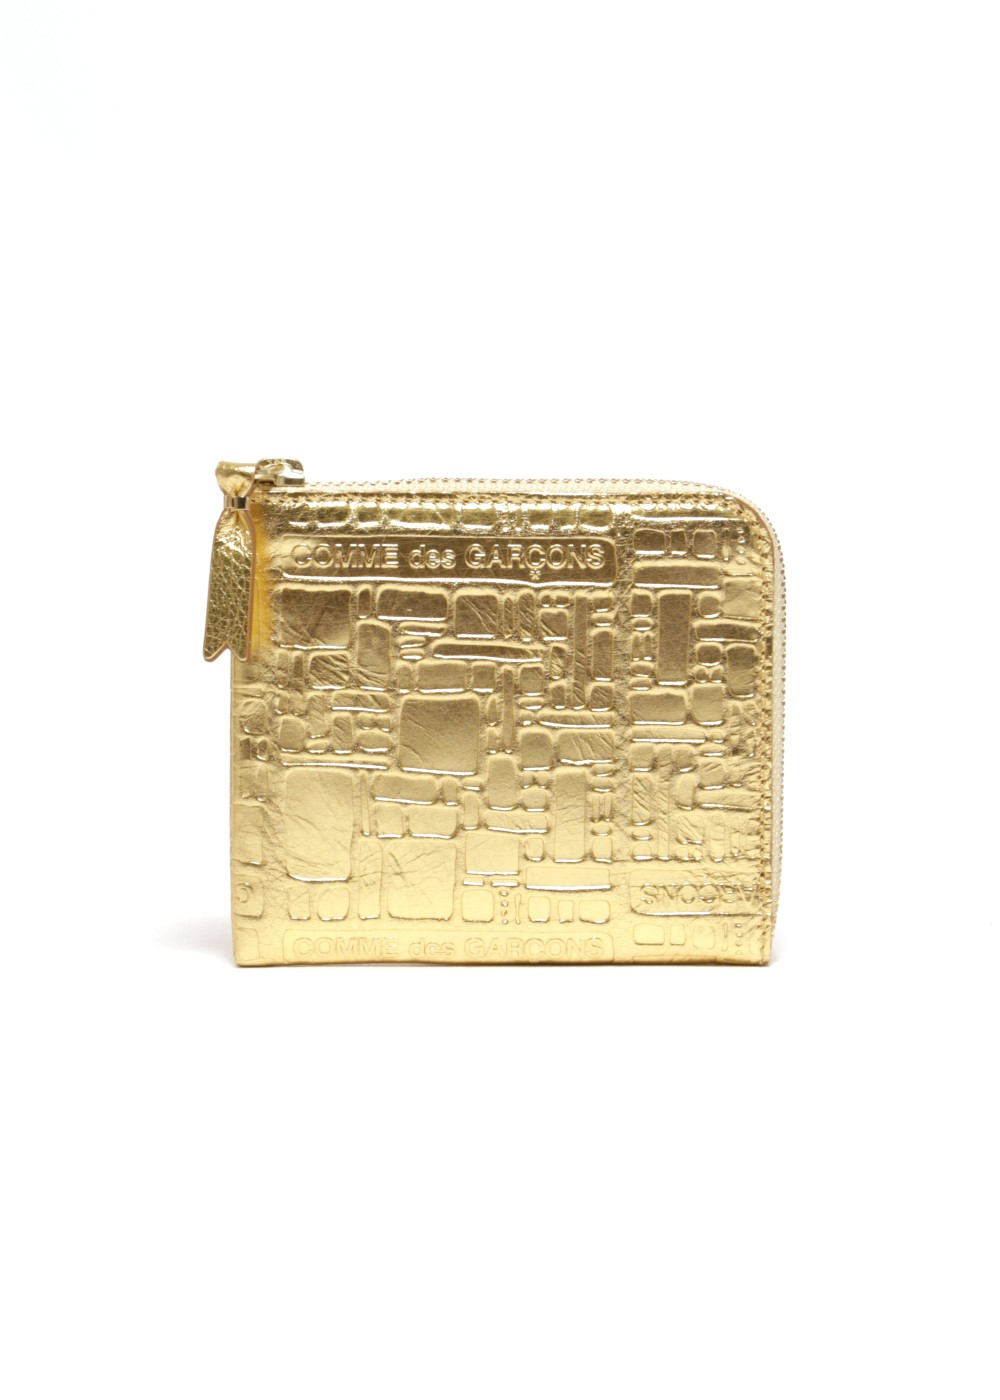 【最大69%OFF】EMBOSSED LOGOTYPE WALLET|GOLD|レディース財布|COMME des GARCONS_(TI)